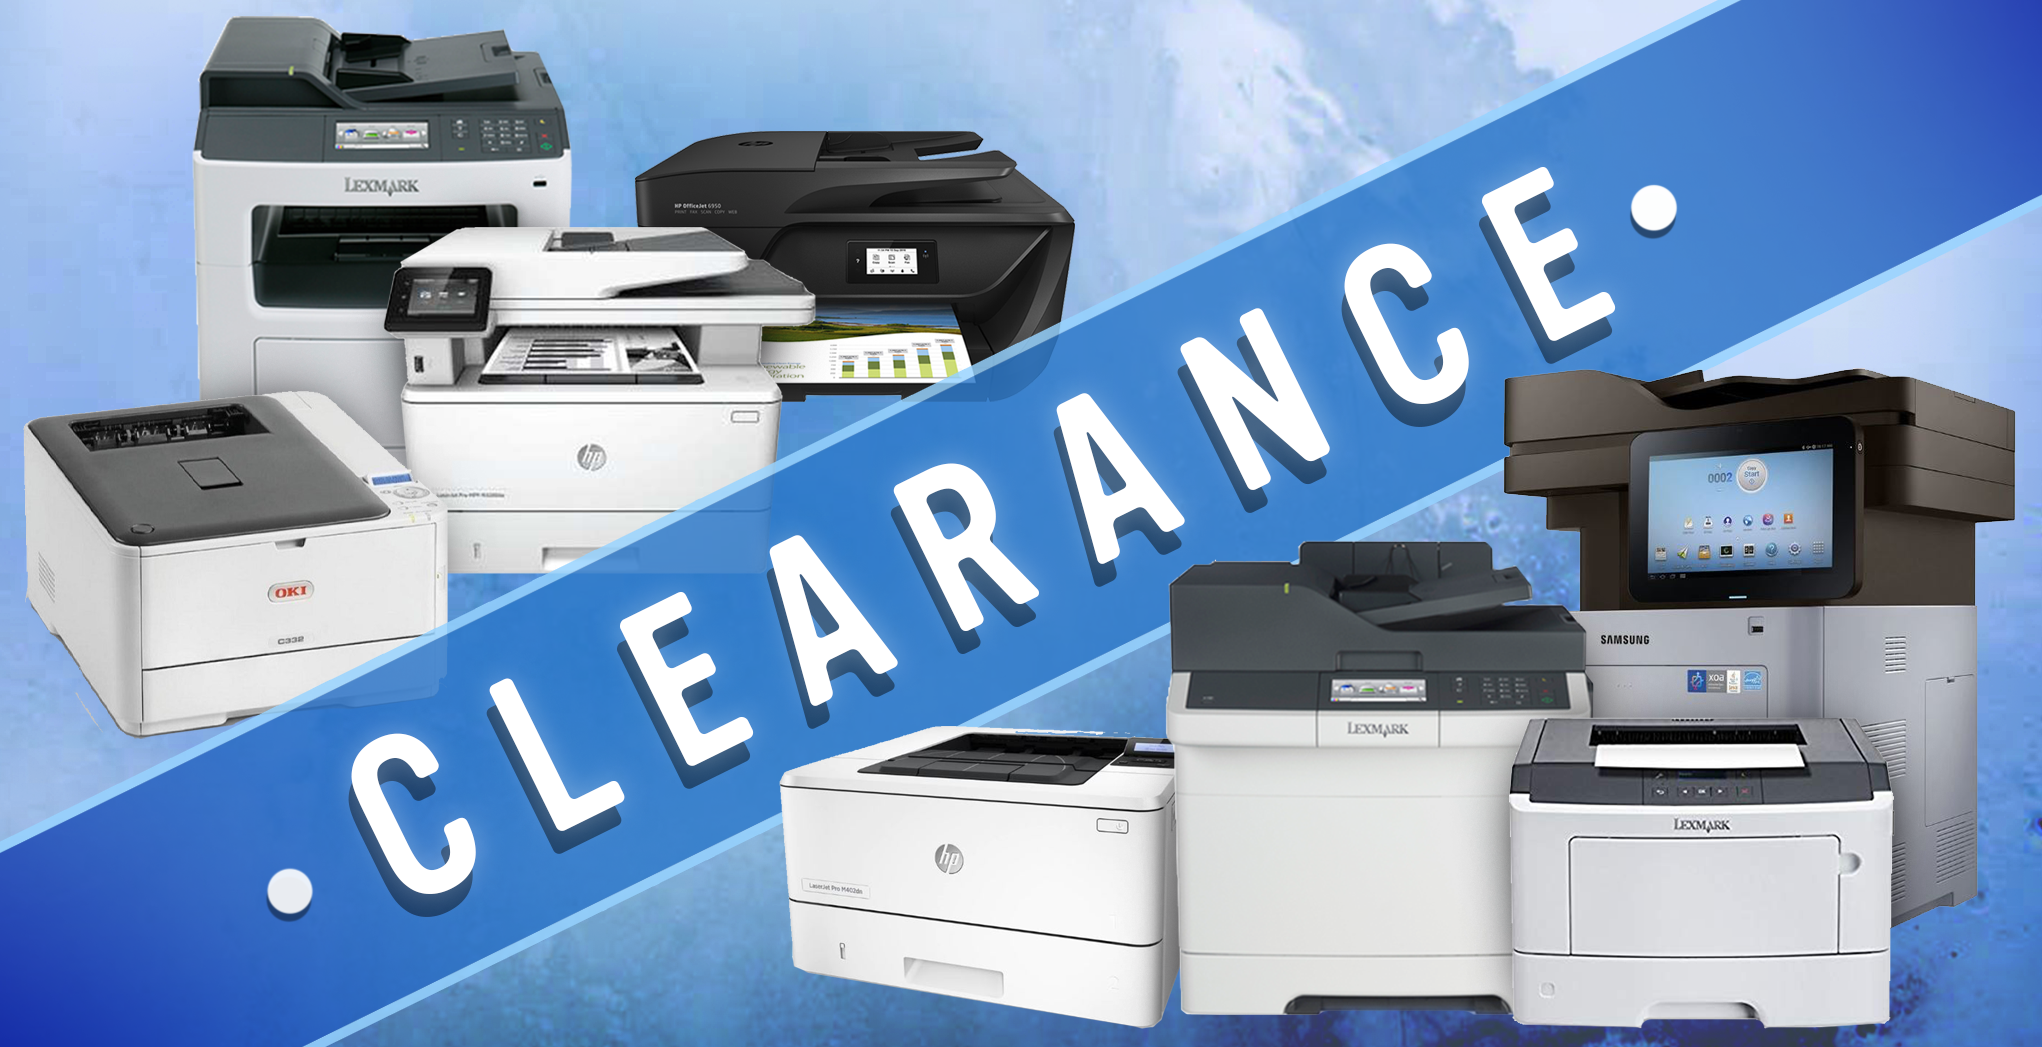 clearance-printers-mediaform.png